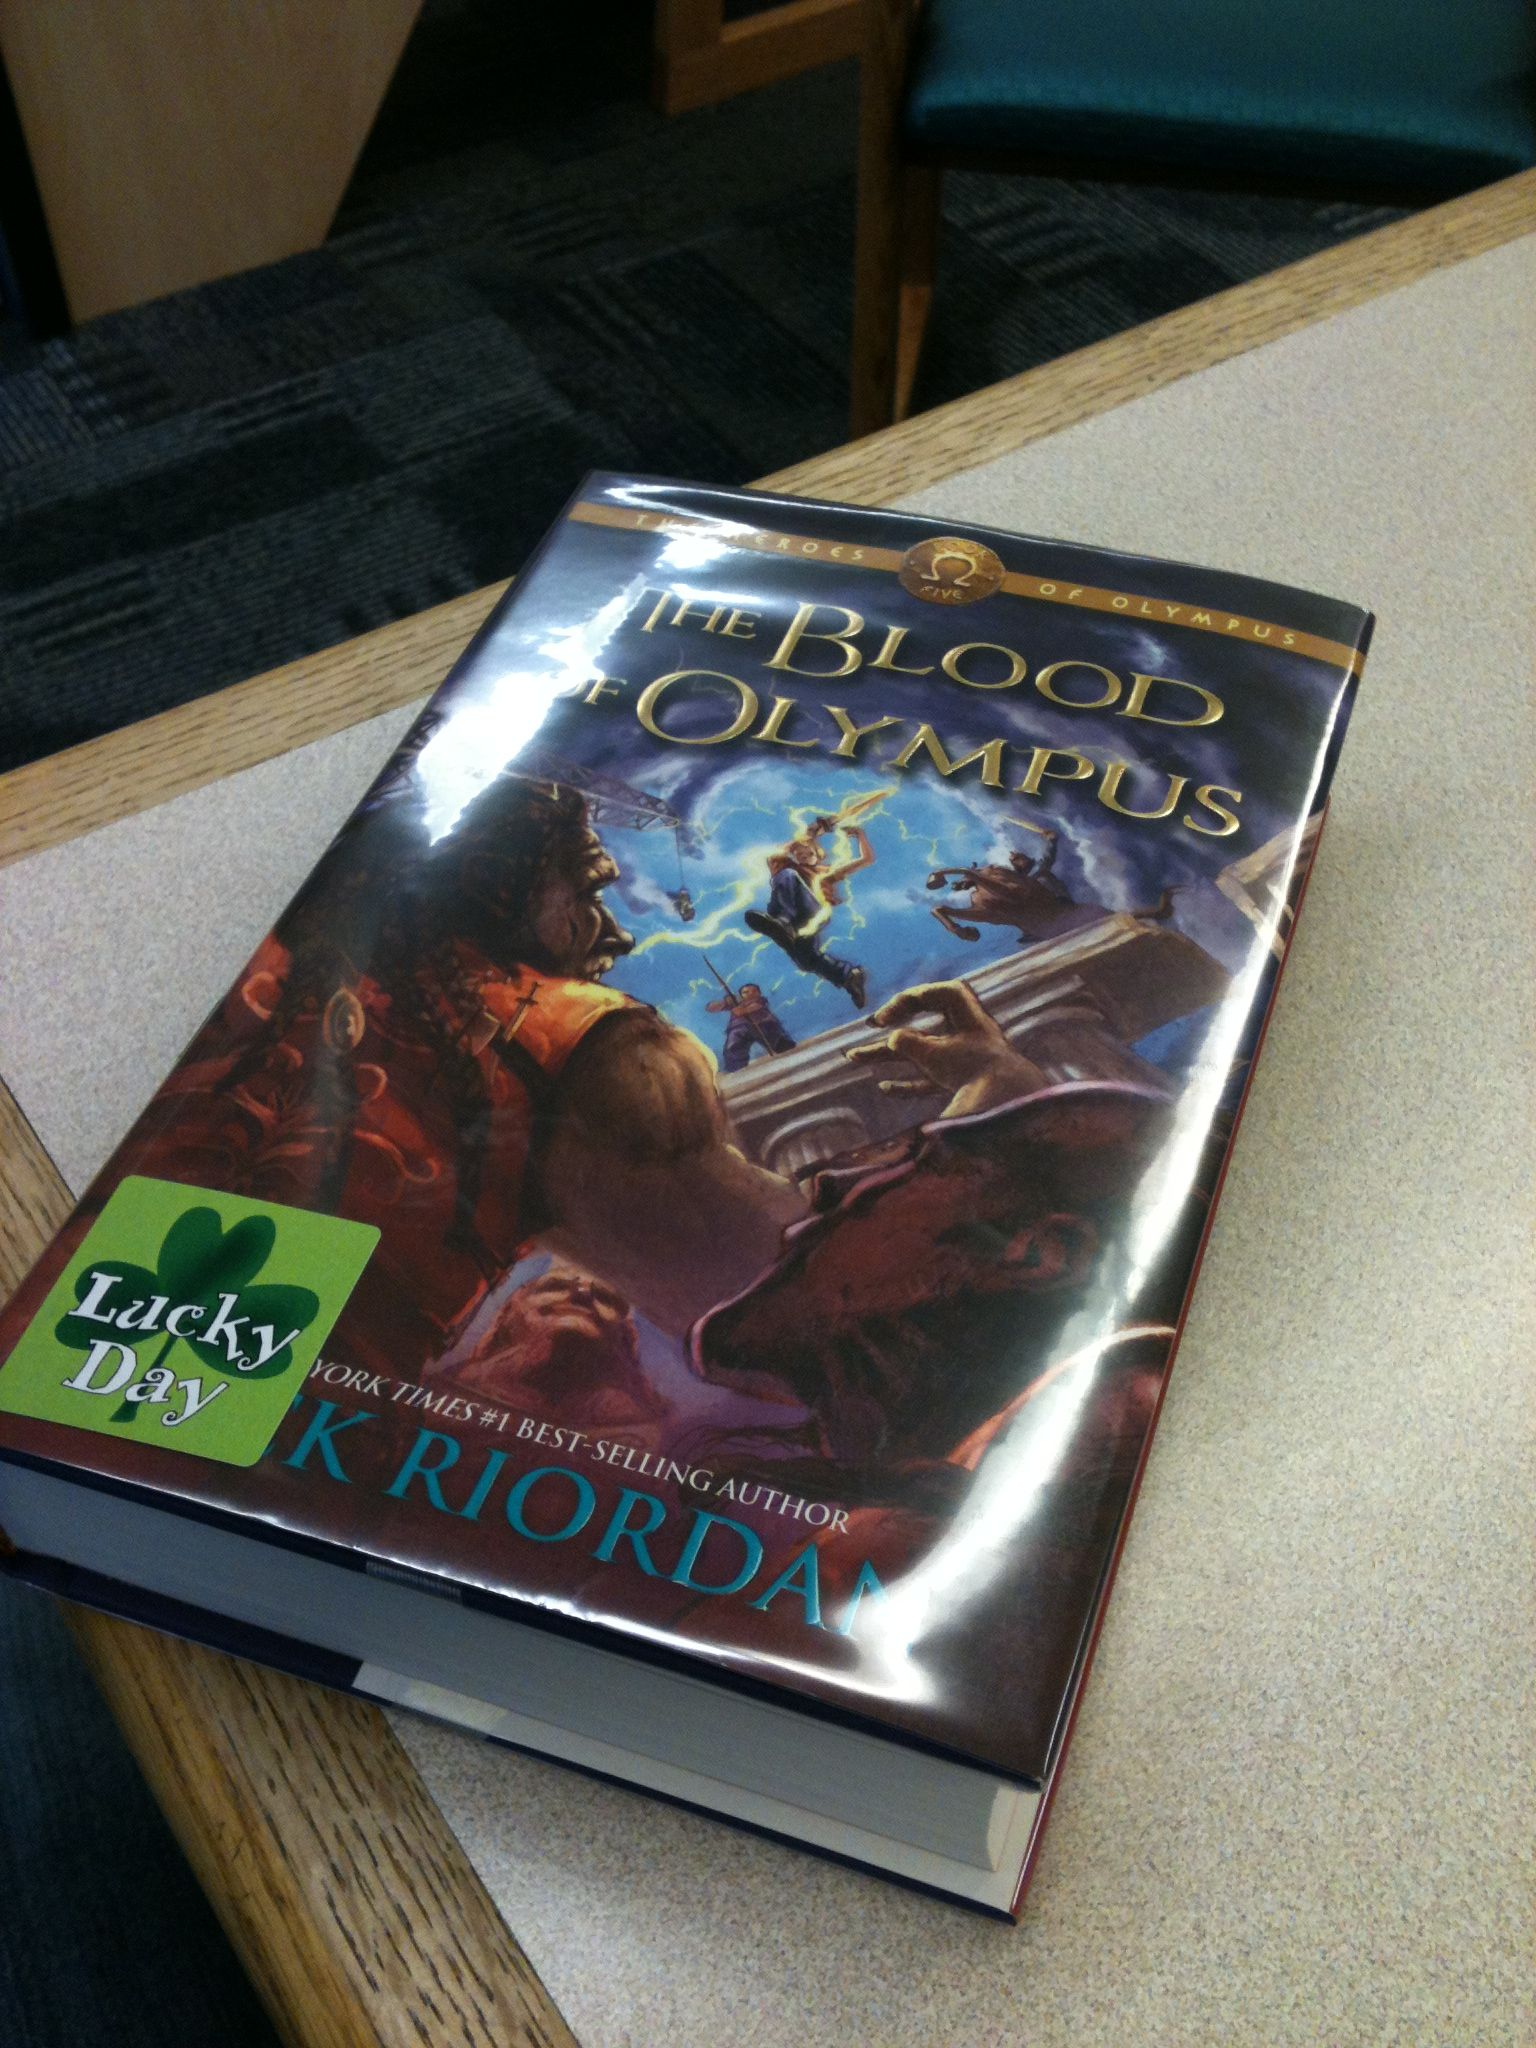 I JUST GOT THIS TODAY AT MY LIBRARY!!!!!!! IM SOOOO EXCITED I ALMOST PASSED OUT!!!!!